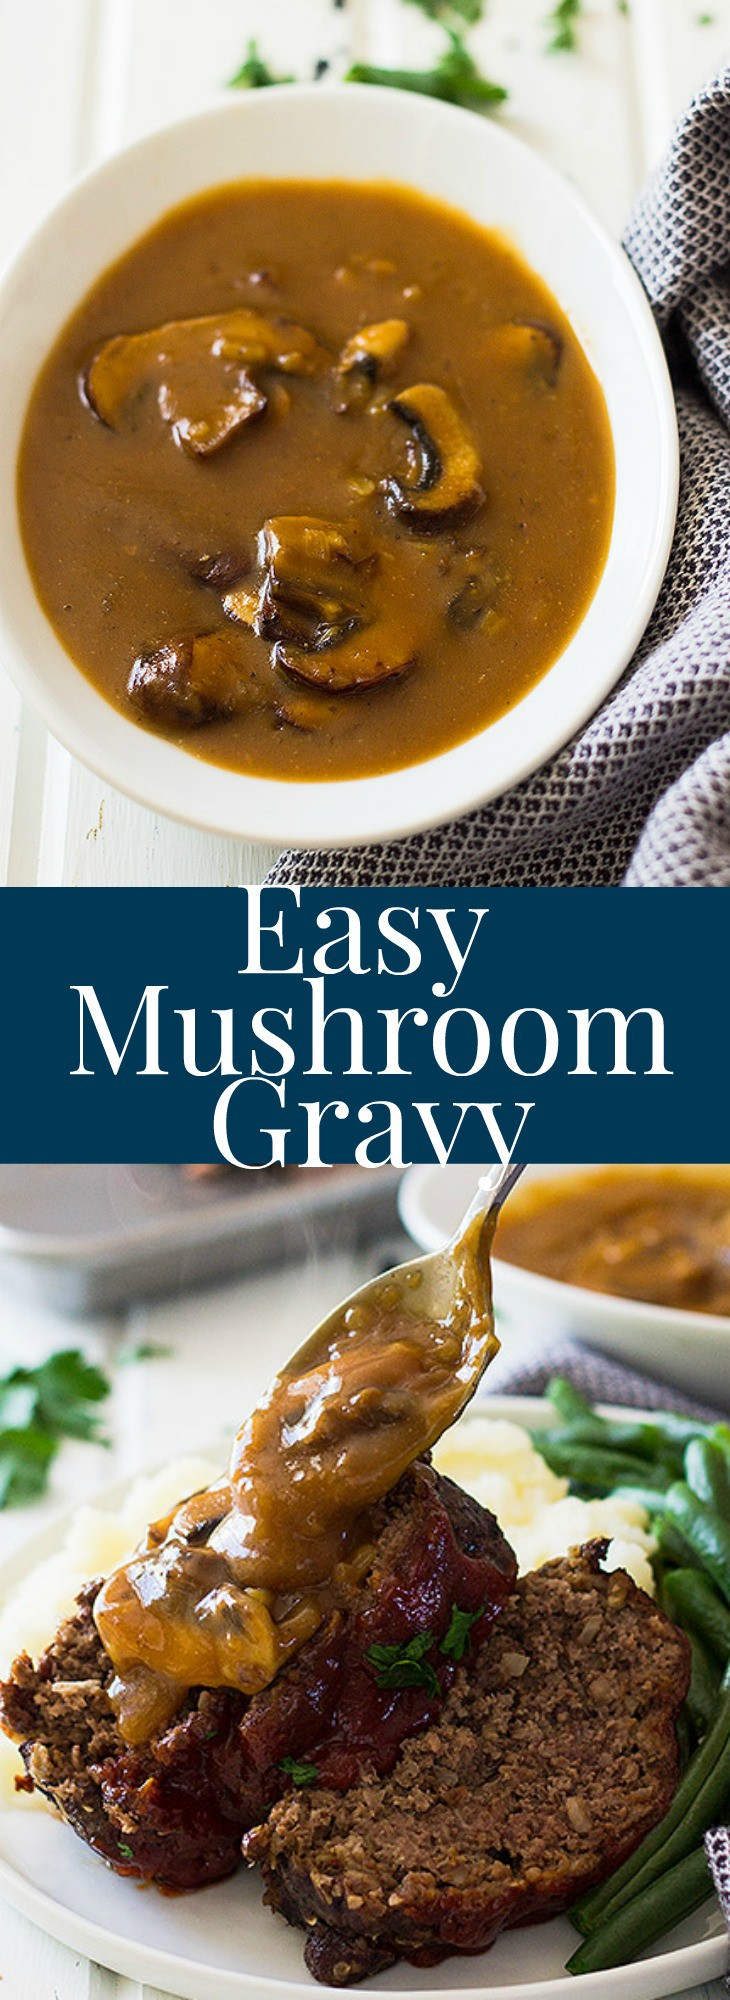 This Easy Mushroom Gravy is quick and simple. It is delicious on top of steaks, mashed potatoes or even meatloaf!   www.countrysidecravings.com